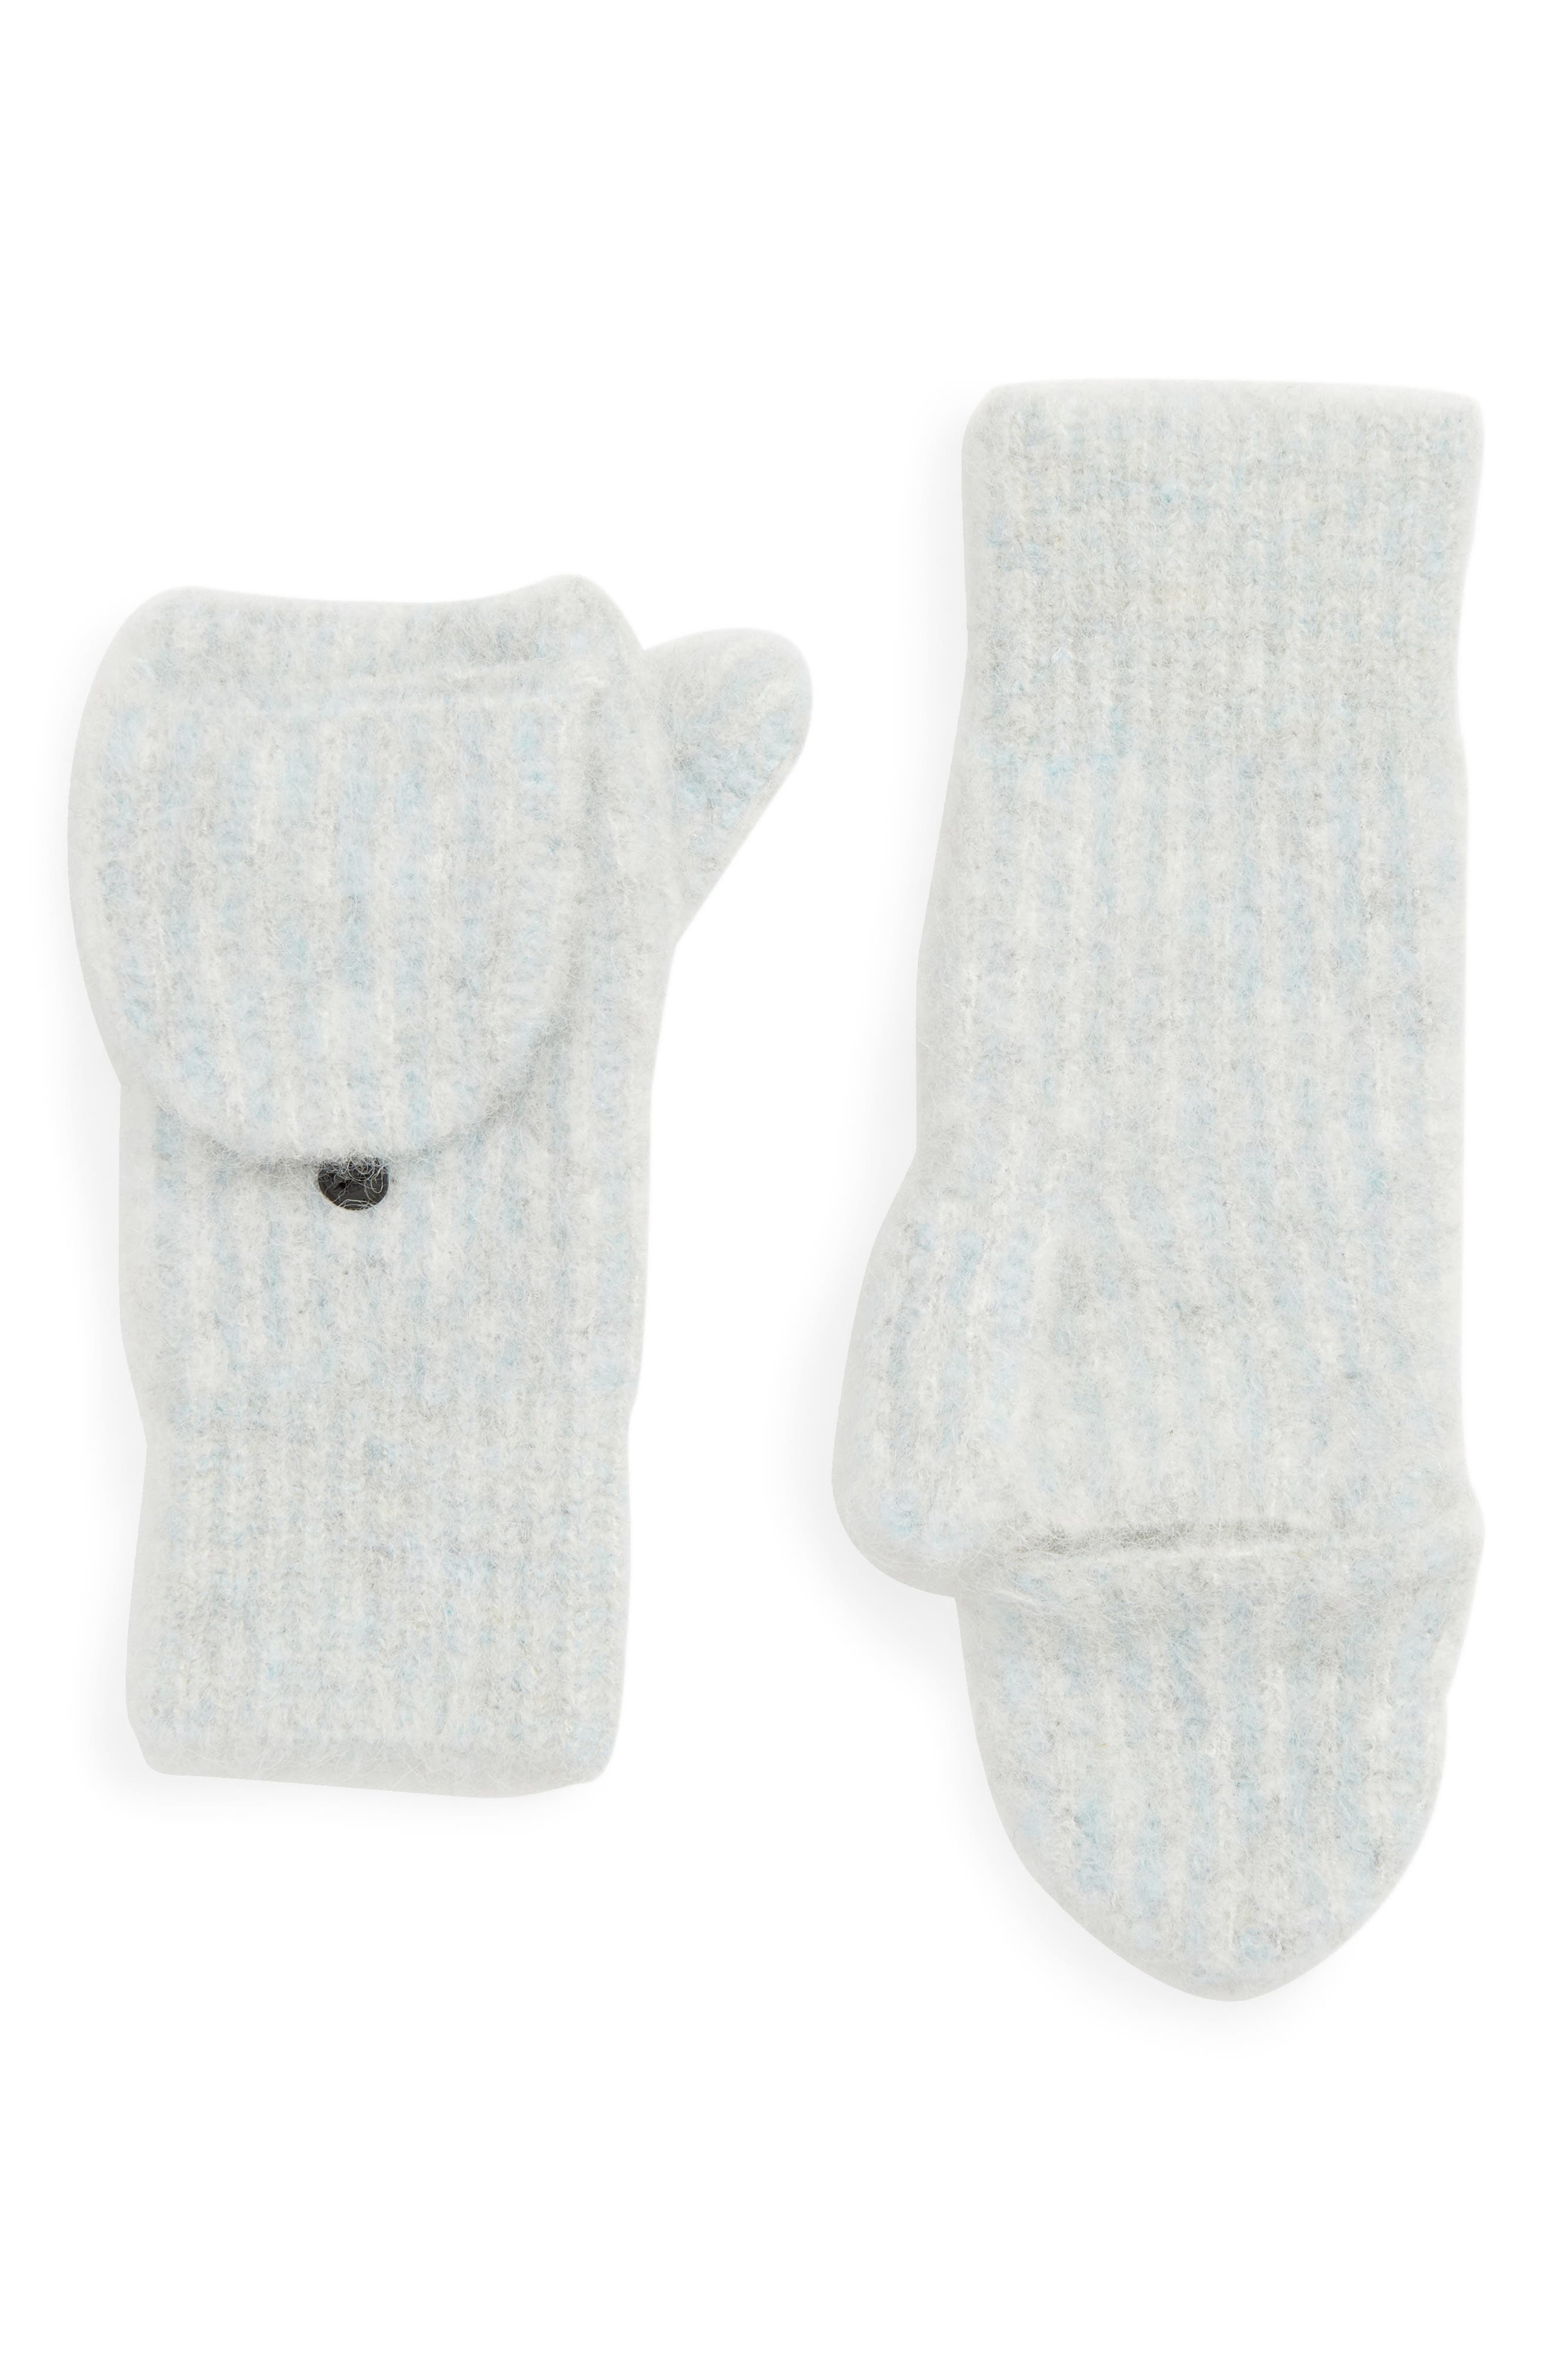 Jonie Convertible Mittens,                             Main thumbnail 1, color,                             LT GREY/ BLUE